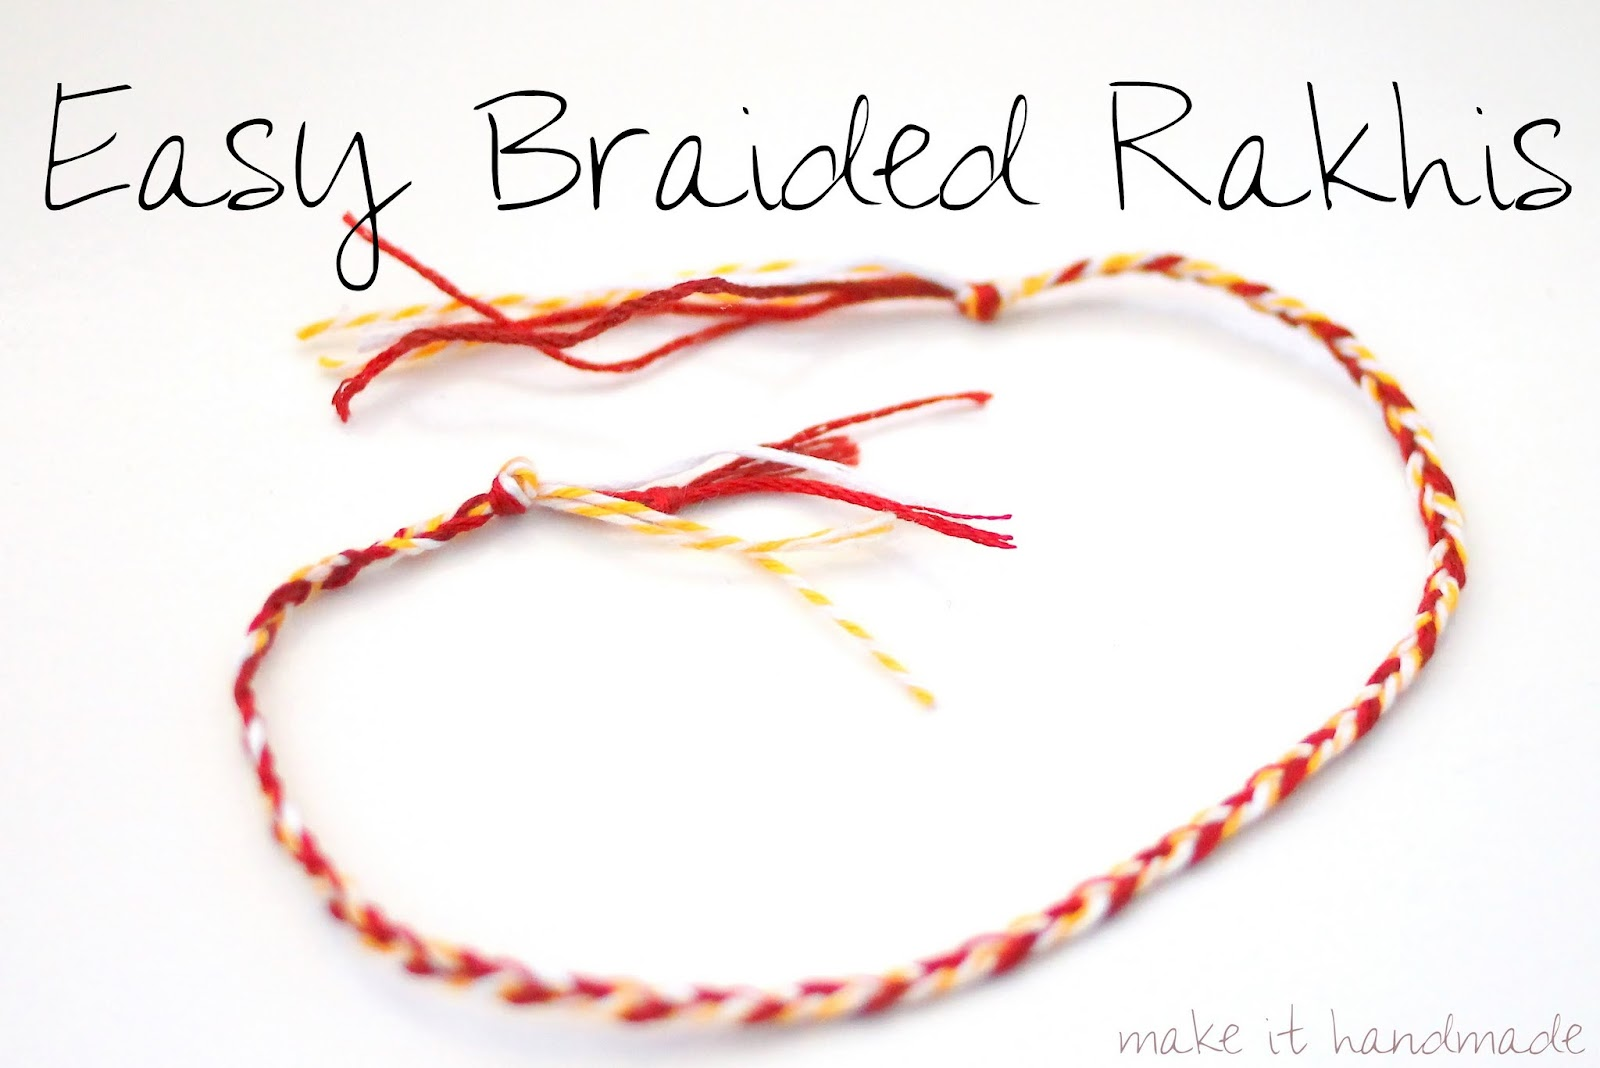 Tips for making your own braided Rakhis and friendship bracelets.